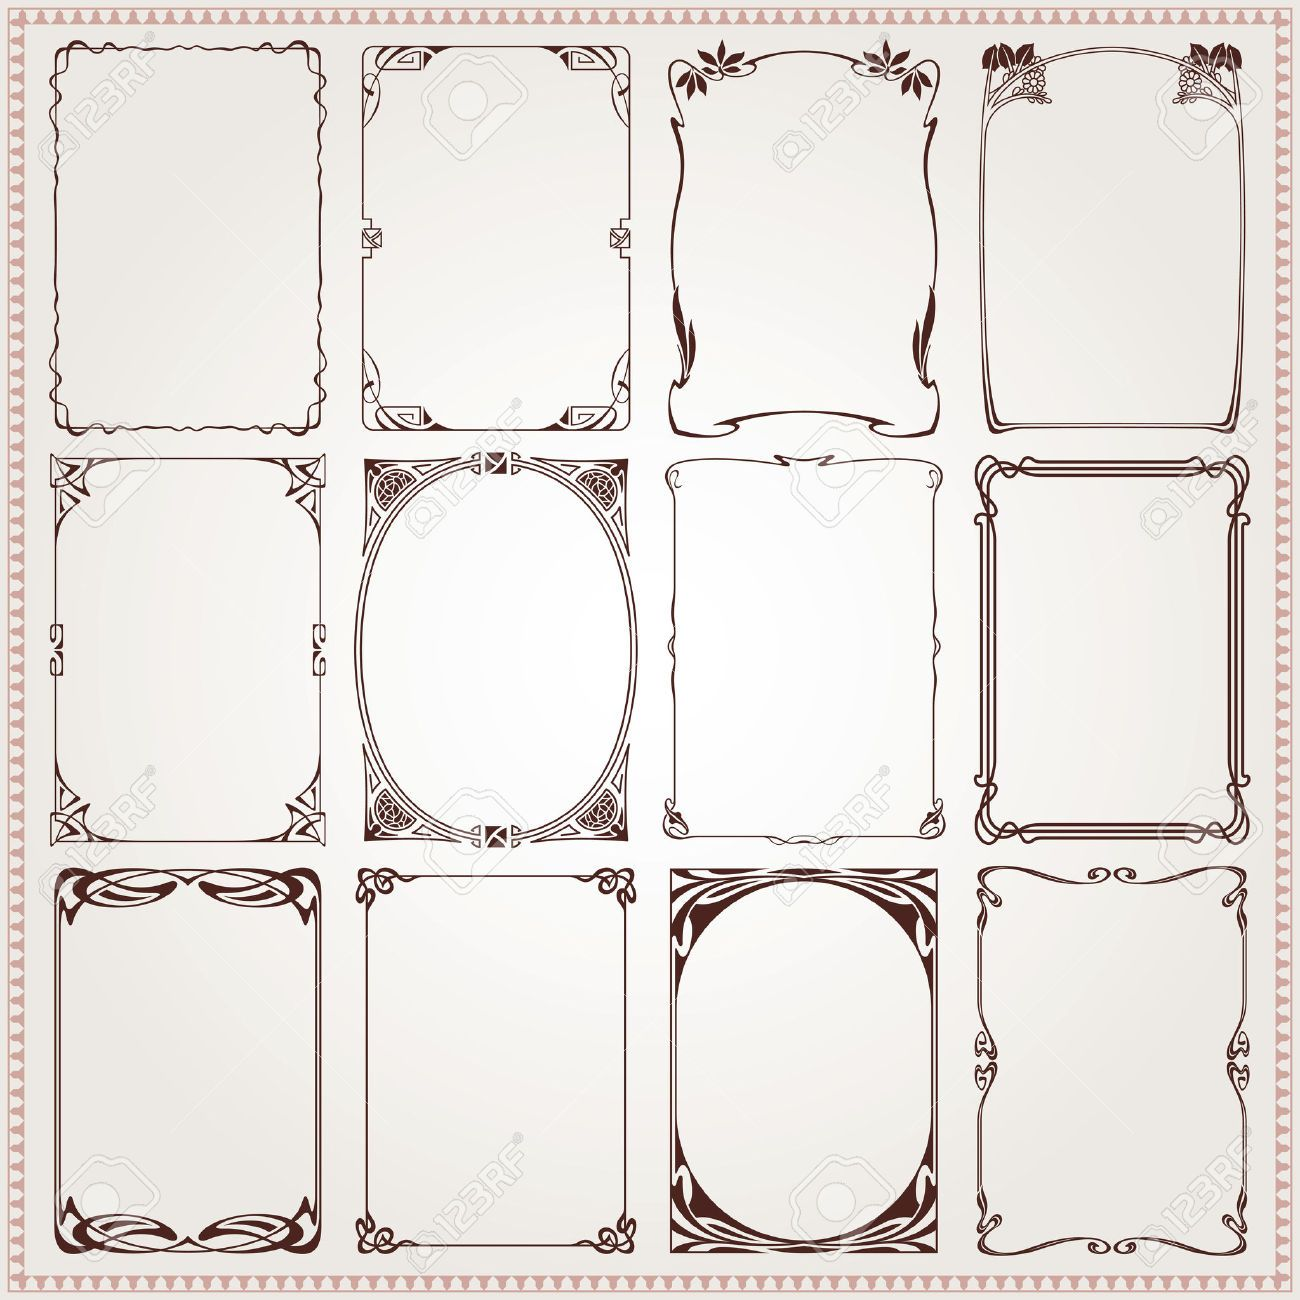 Decorative vintage borders and frames Art Nouveau style vector ...